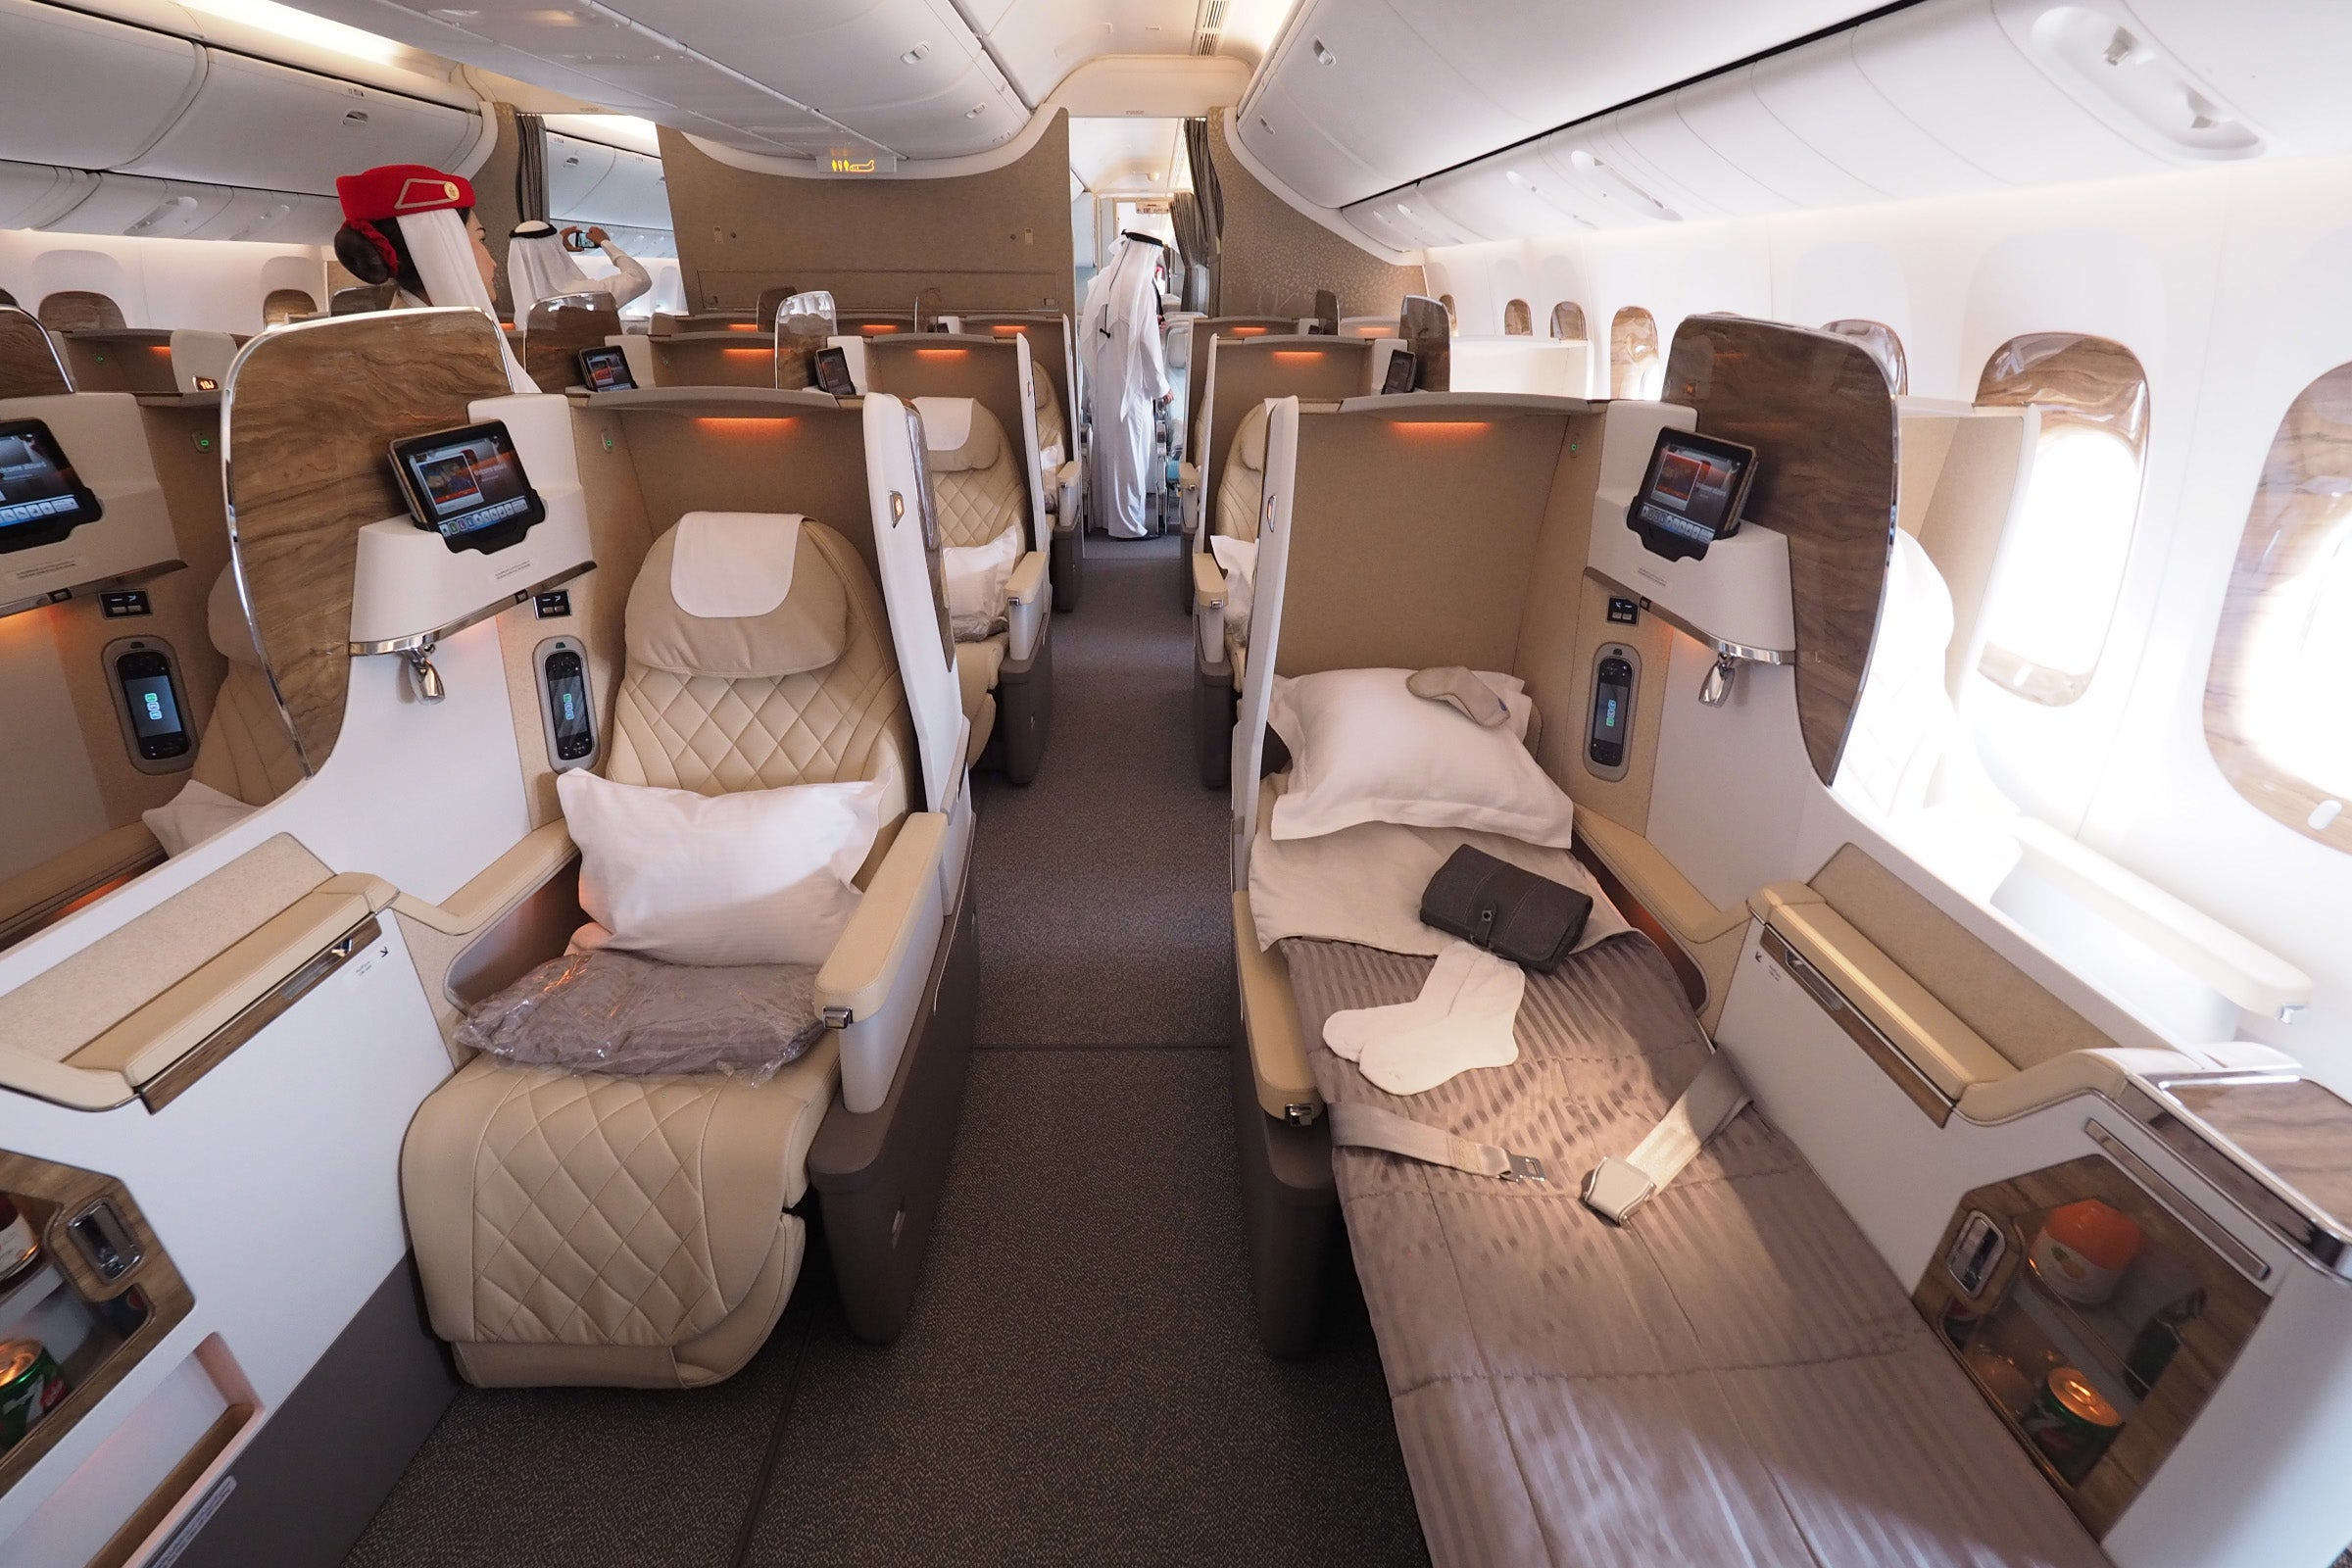 The Good News Is That This Final Emirates Business Class Seat Well See With A 2 3 Arrangement Once Airline Begins Taking Delivery Of